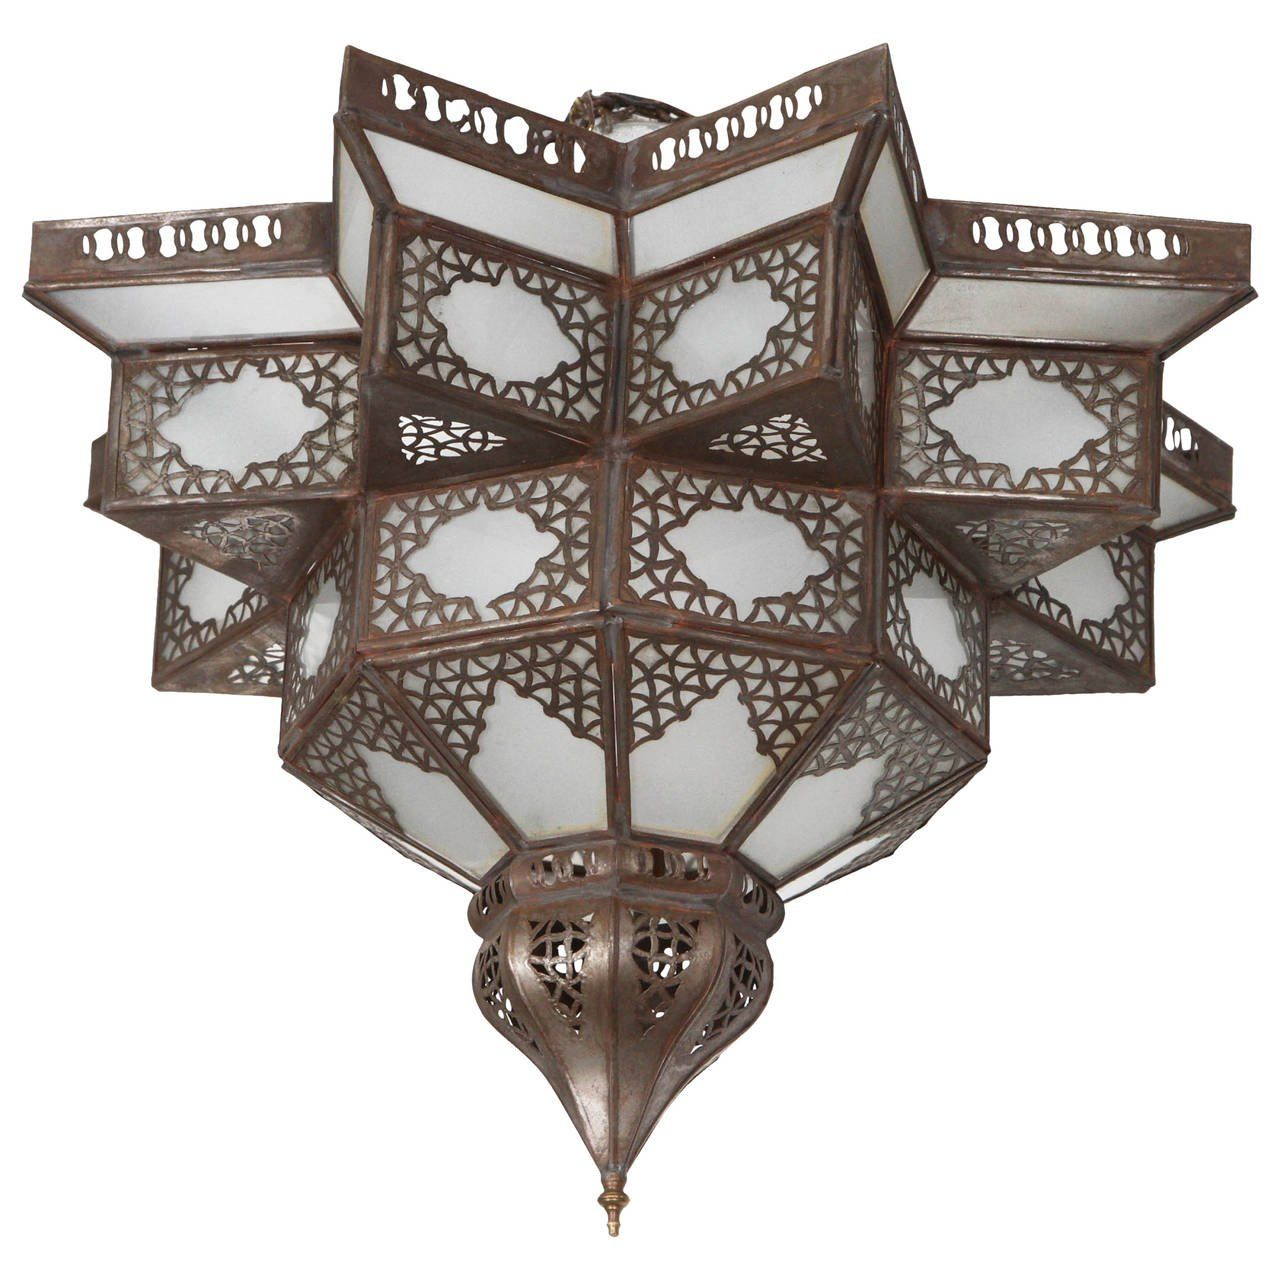 Moroccan star shape frosted glass light shade glass light shades moroccan star shape frosted glass light shade flush mount ceiling arubaitofo Choice Image